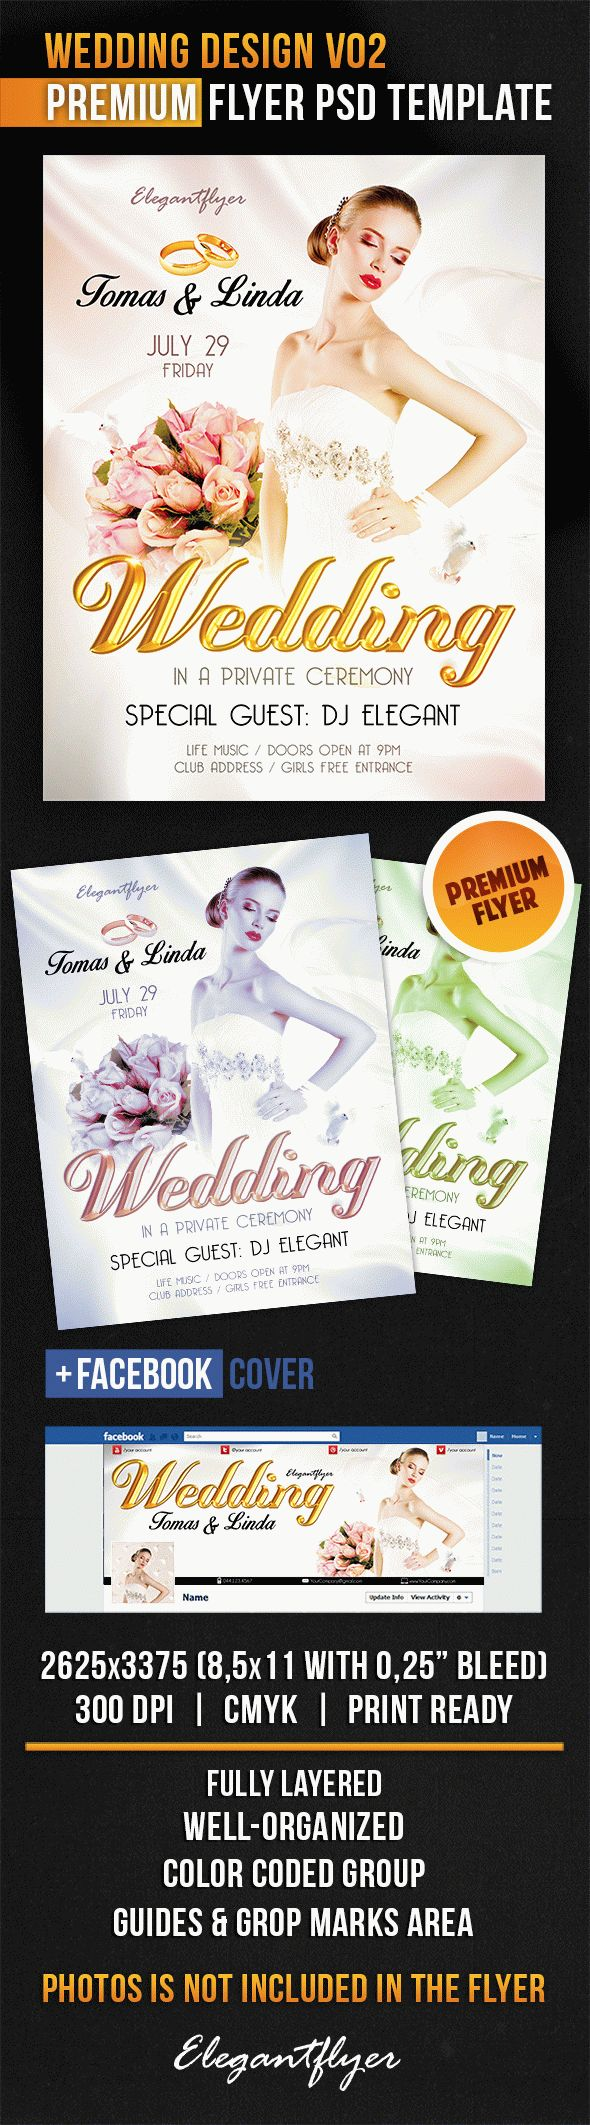 Wedding Design V02 – Flyer PSD Template + Facebook Cover